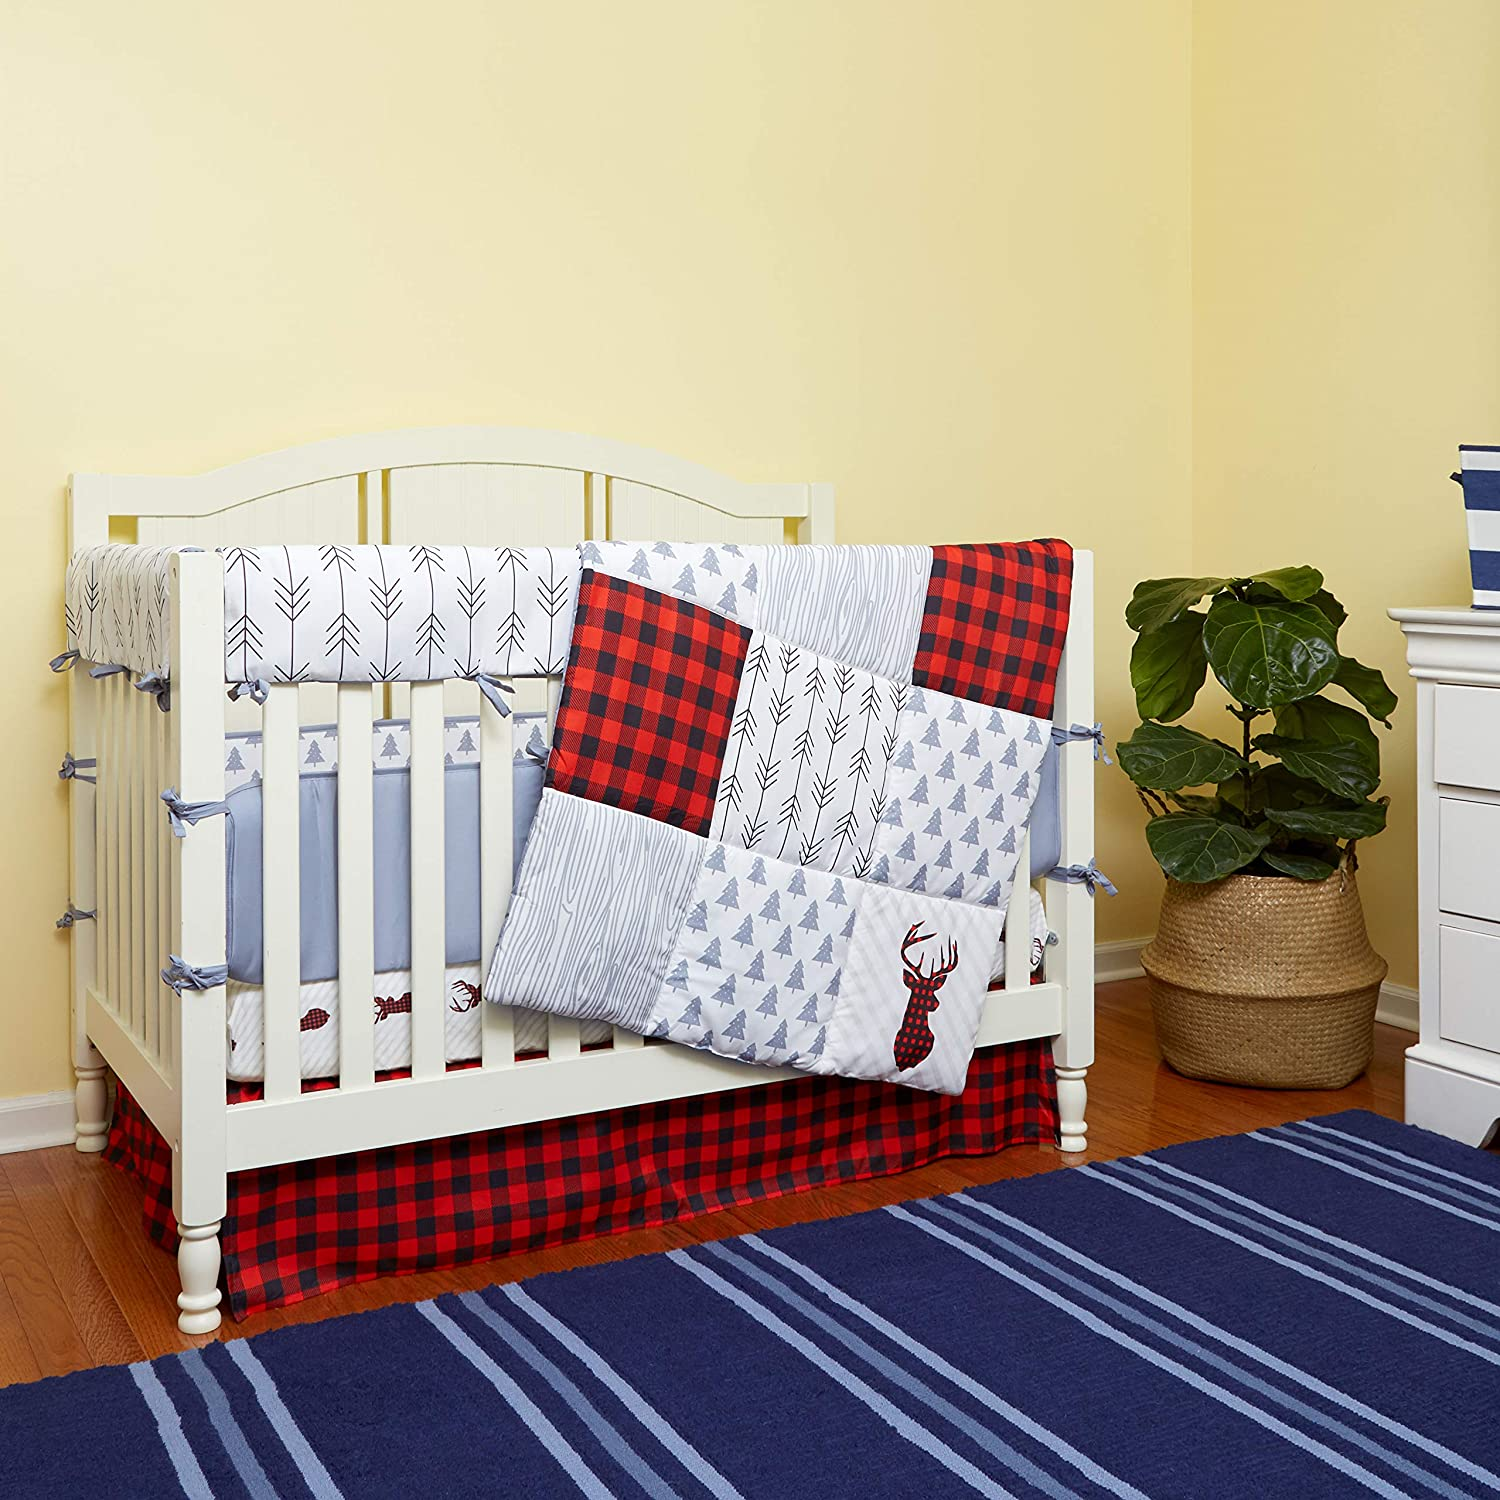 5 Piece Baby Crib Set, 100% Cotton Crib Sheet, Quilted Blanket, Bumper, Crib Skirt & Crib Rail Covers. Deer ; Red Lumberjack, Red/Black Buffalo Plaid; Poly Mat. for Durability, WalkerRun